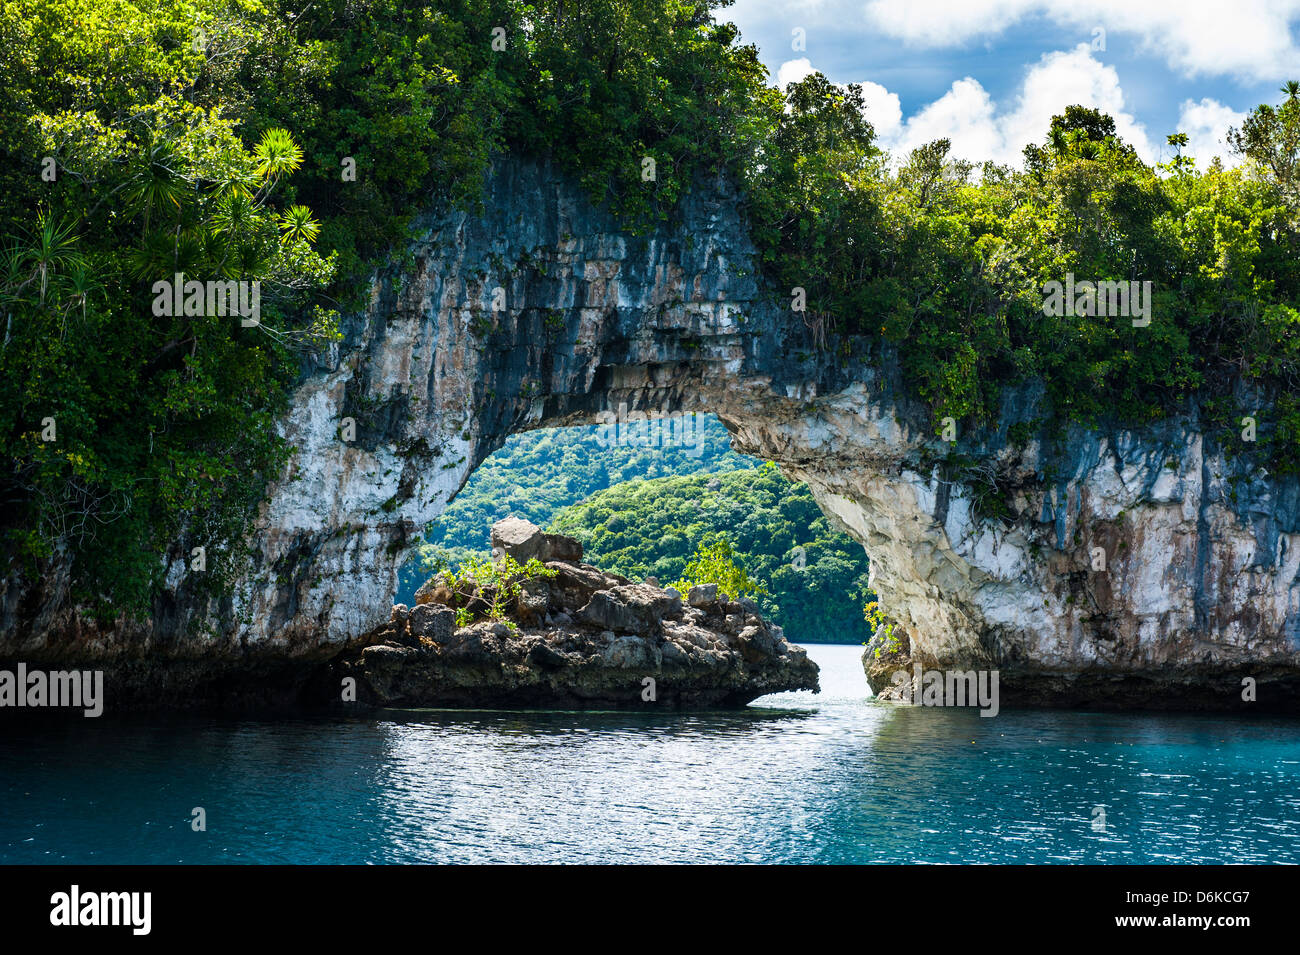 Rock arch in the Rock islands, Palau, Central Pacific, Pacific - Stock Image